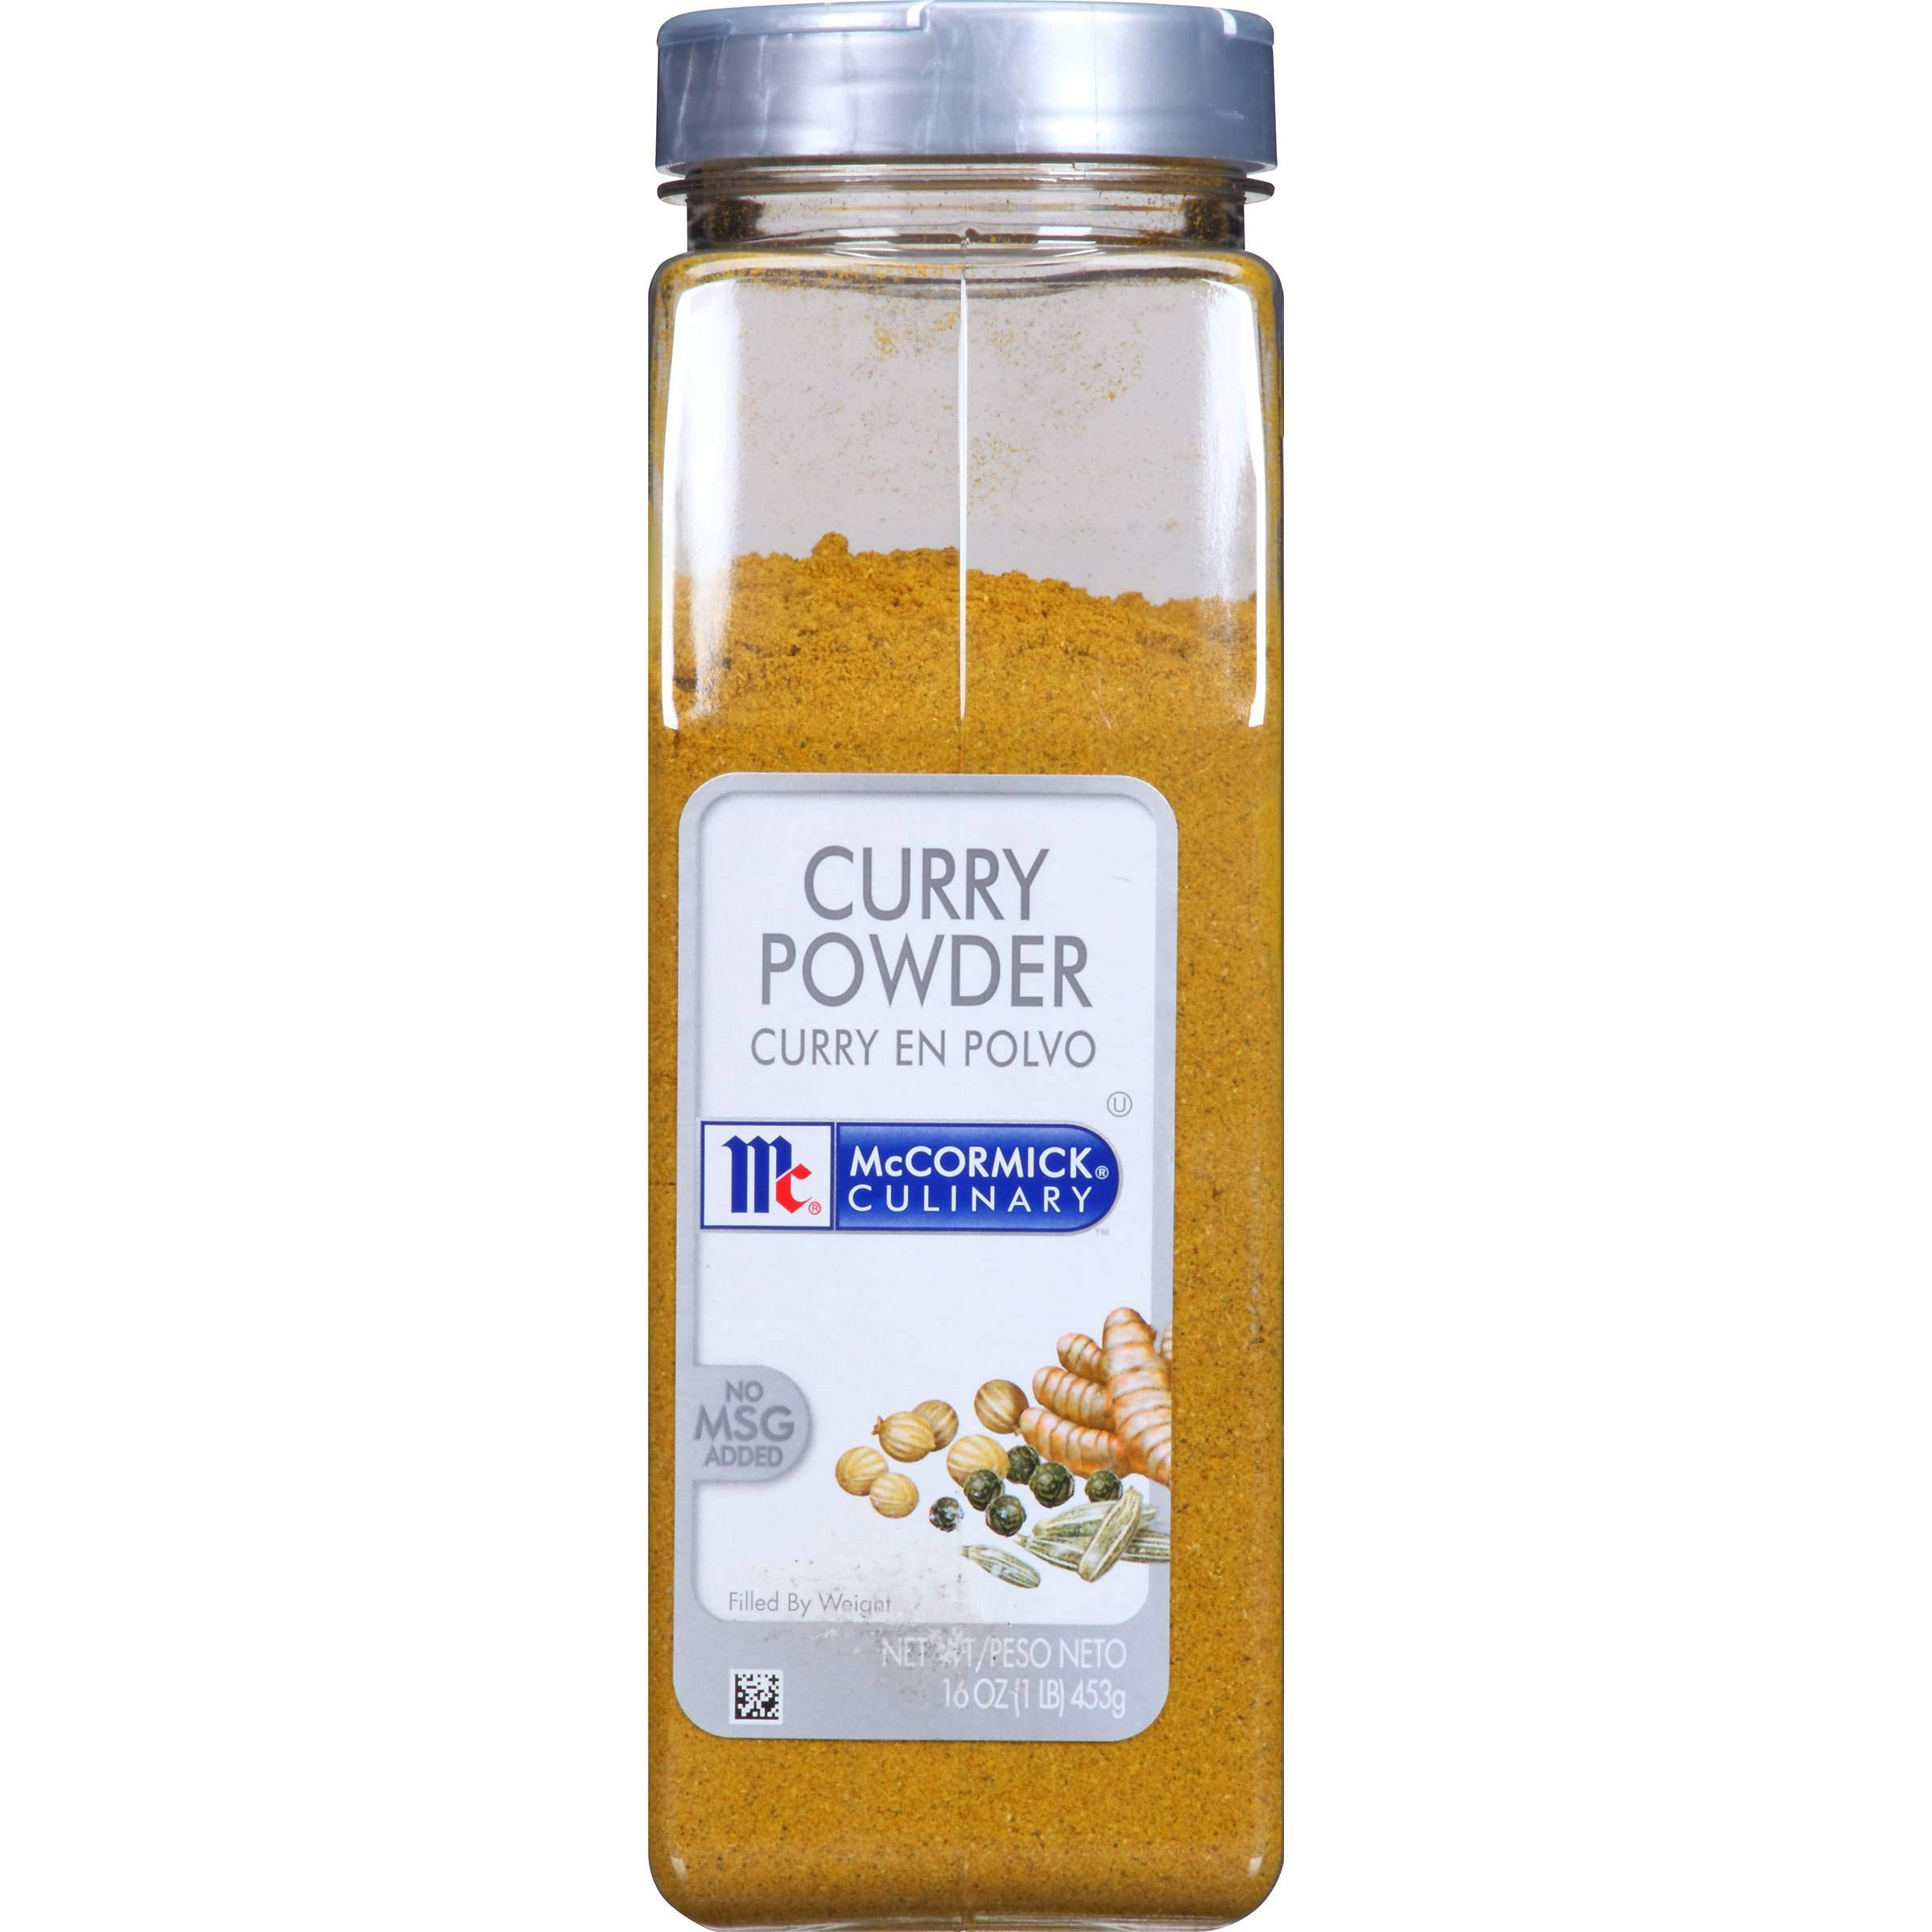 Mccormick Curry Powder - 1 lb. container, 6 per case by McCormick (Image #1)